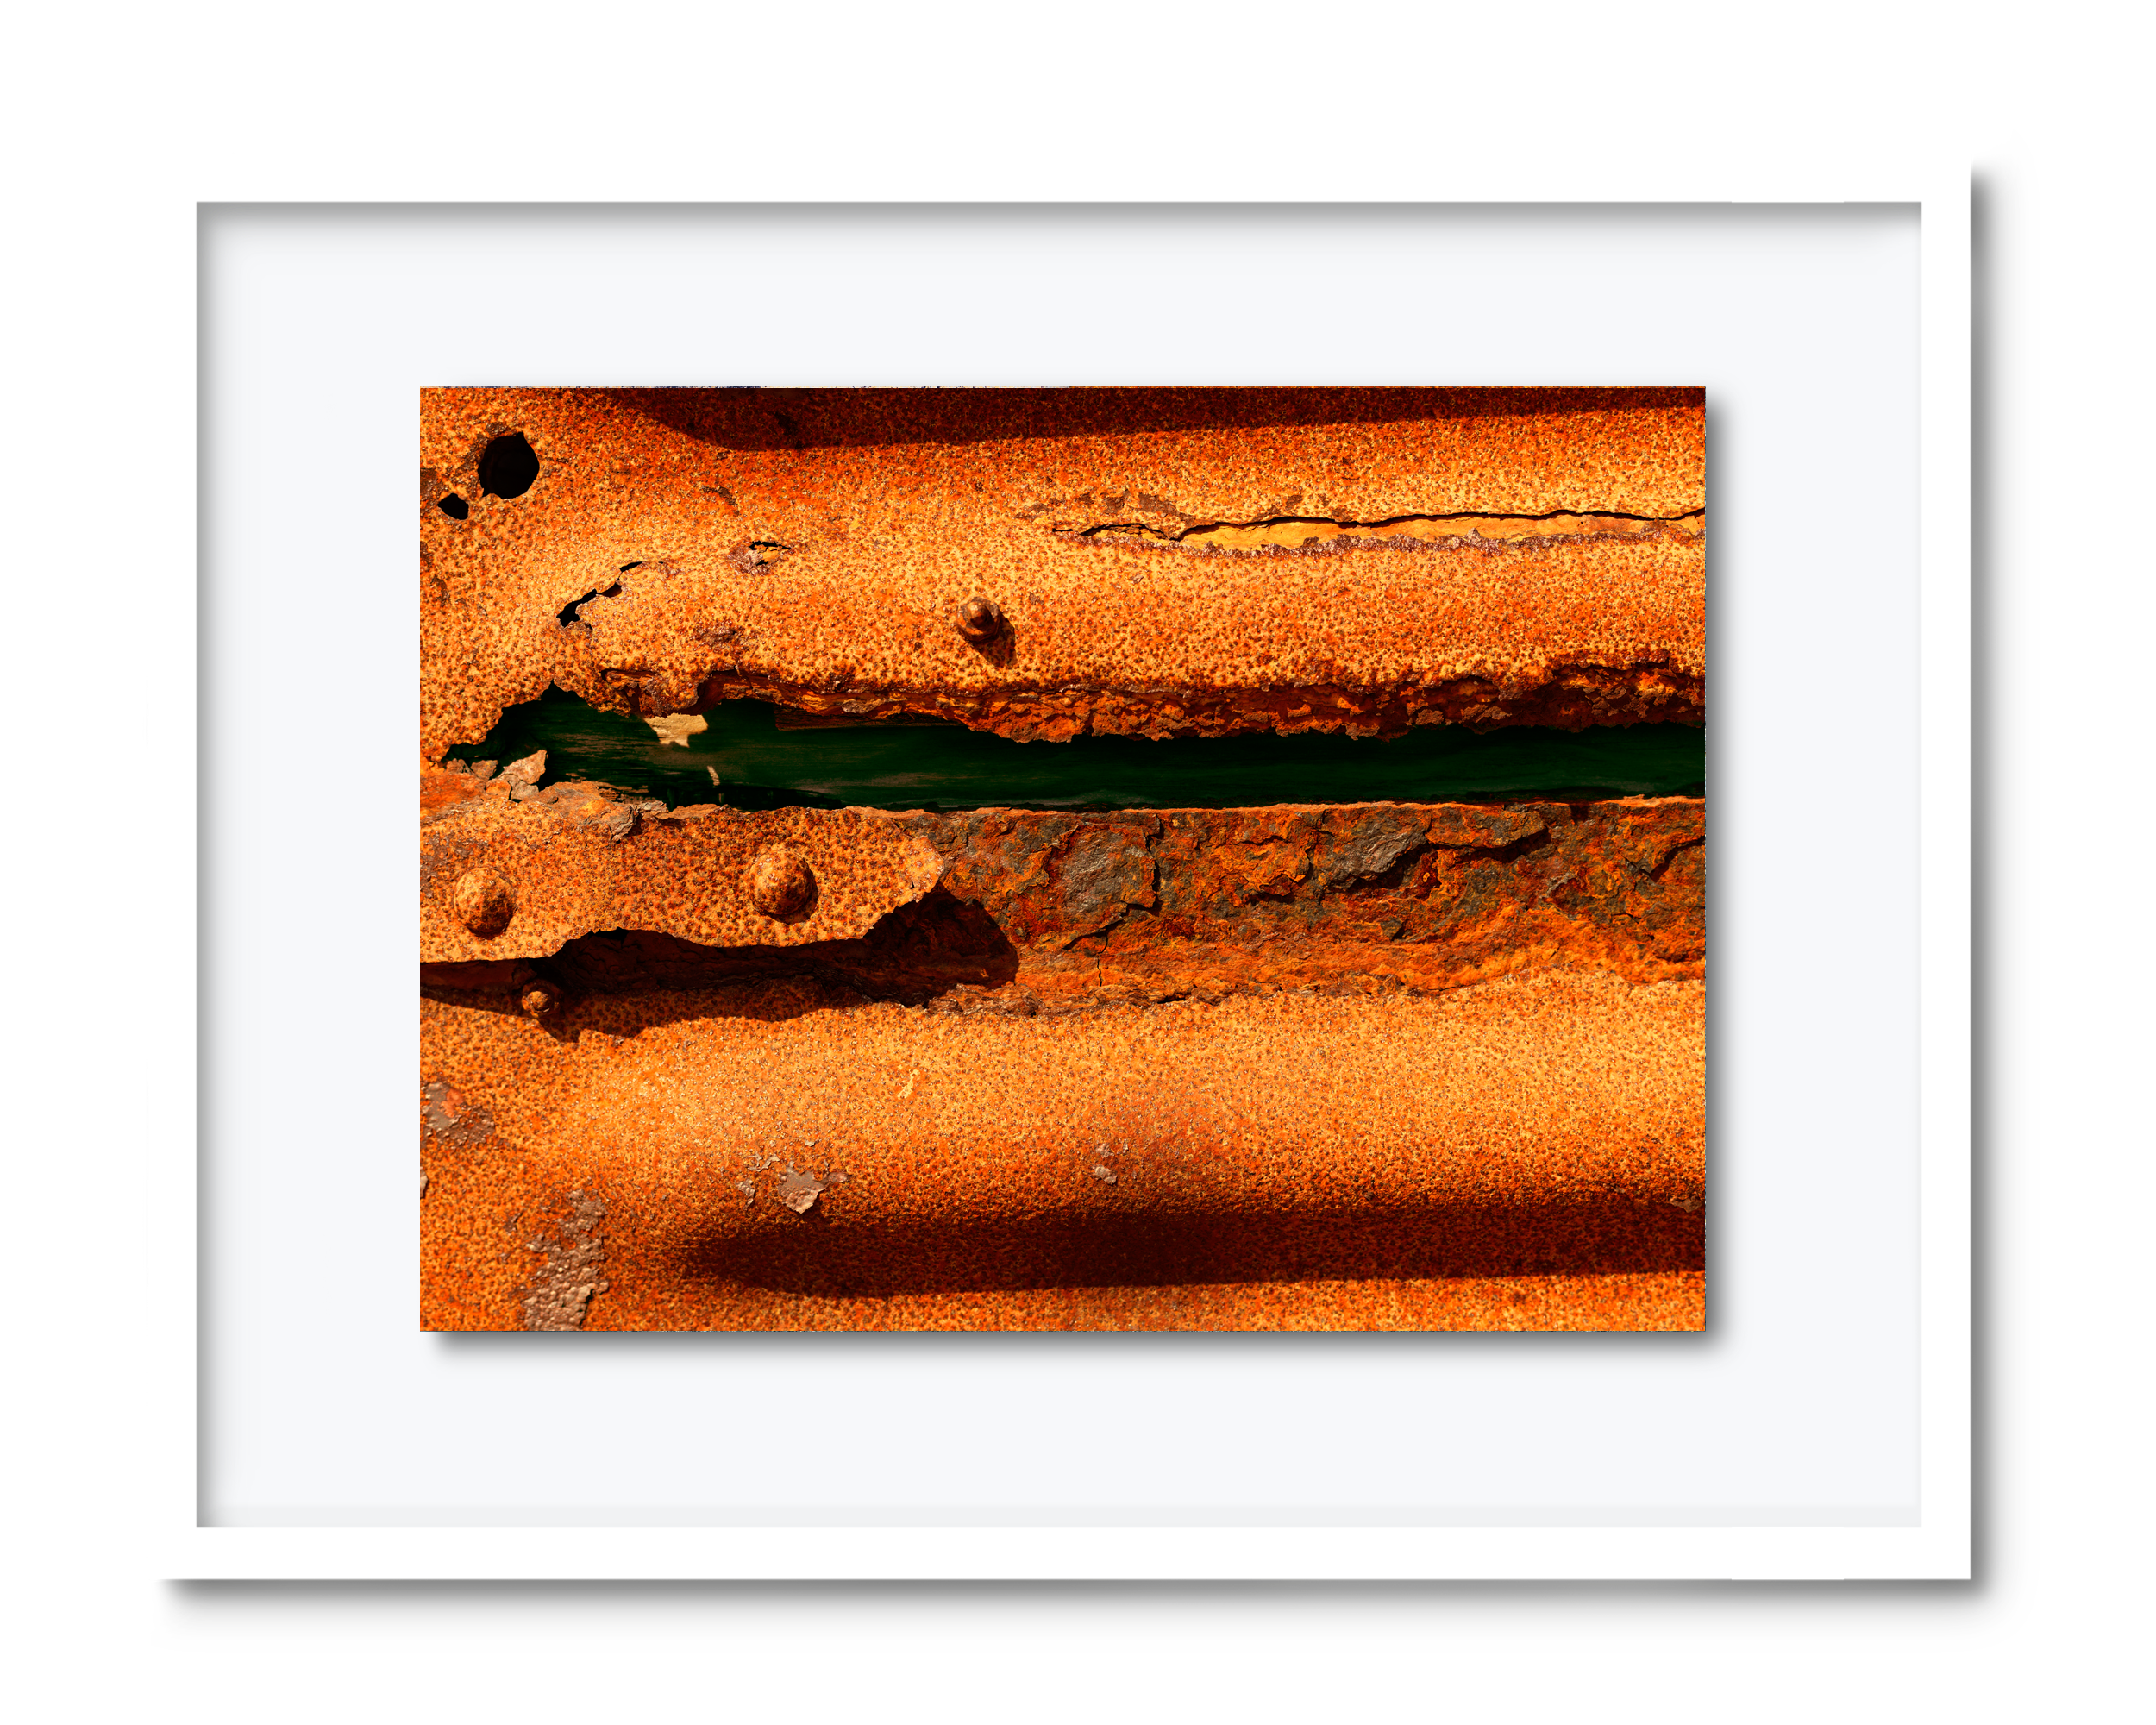 64.david-pearce-rust-texture.png